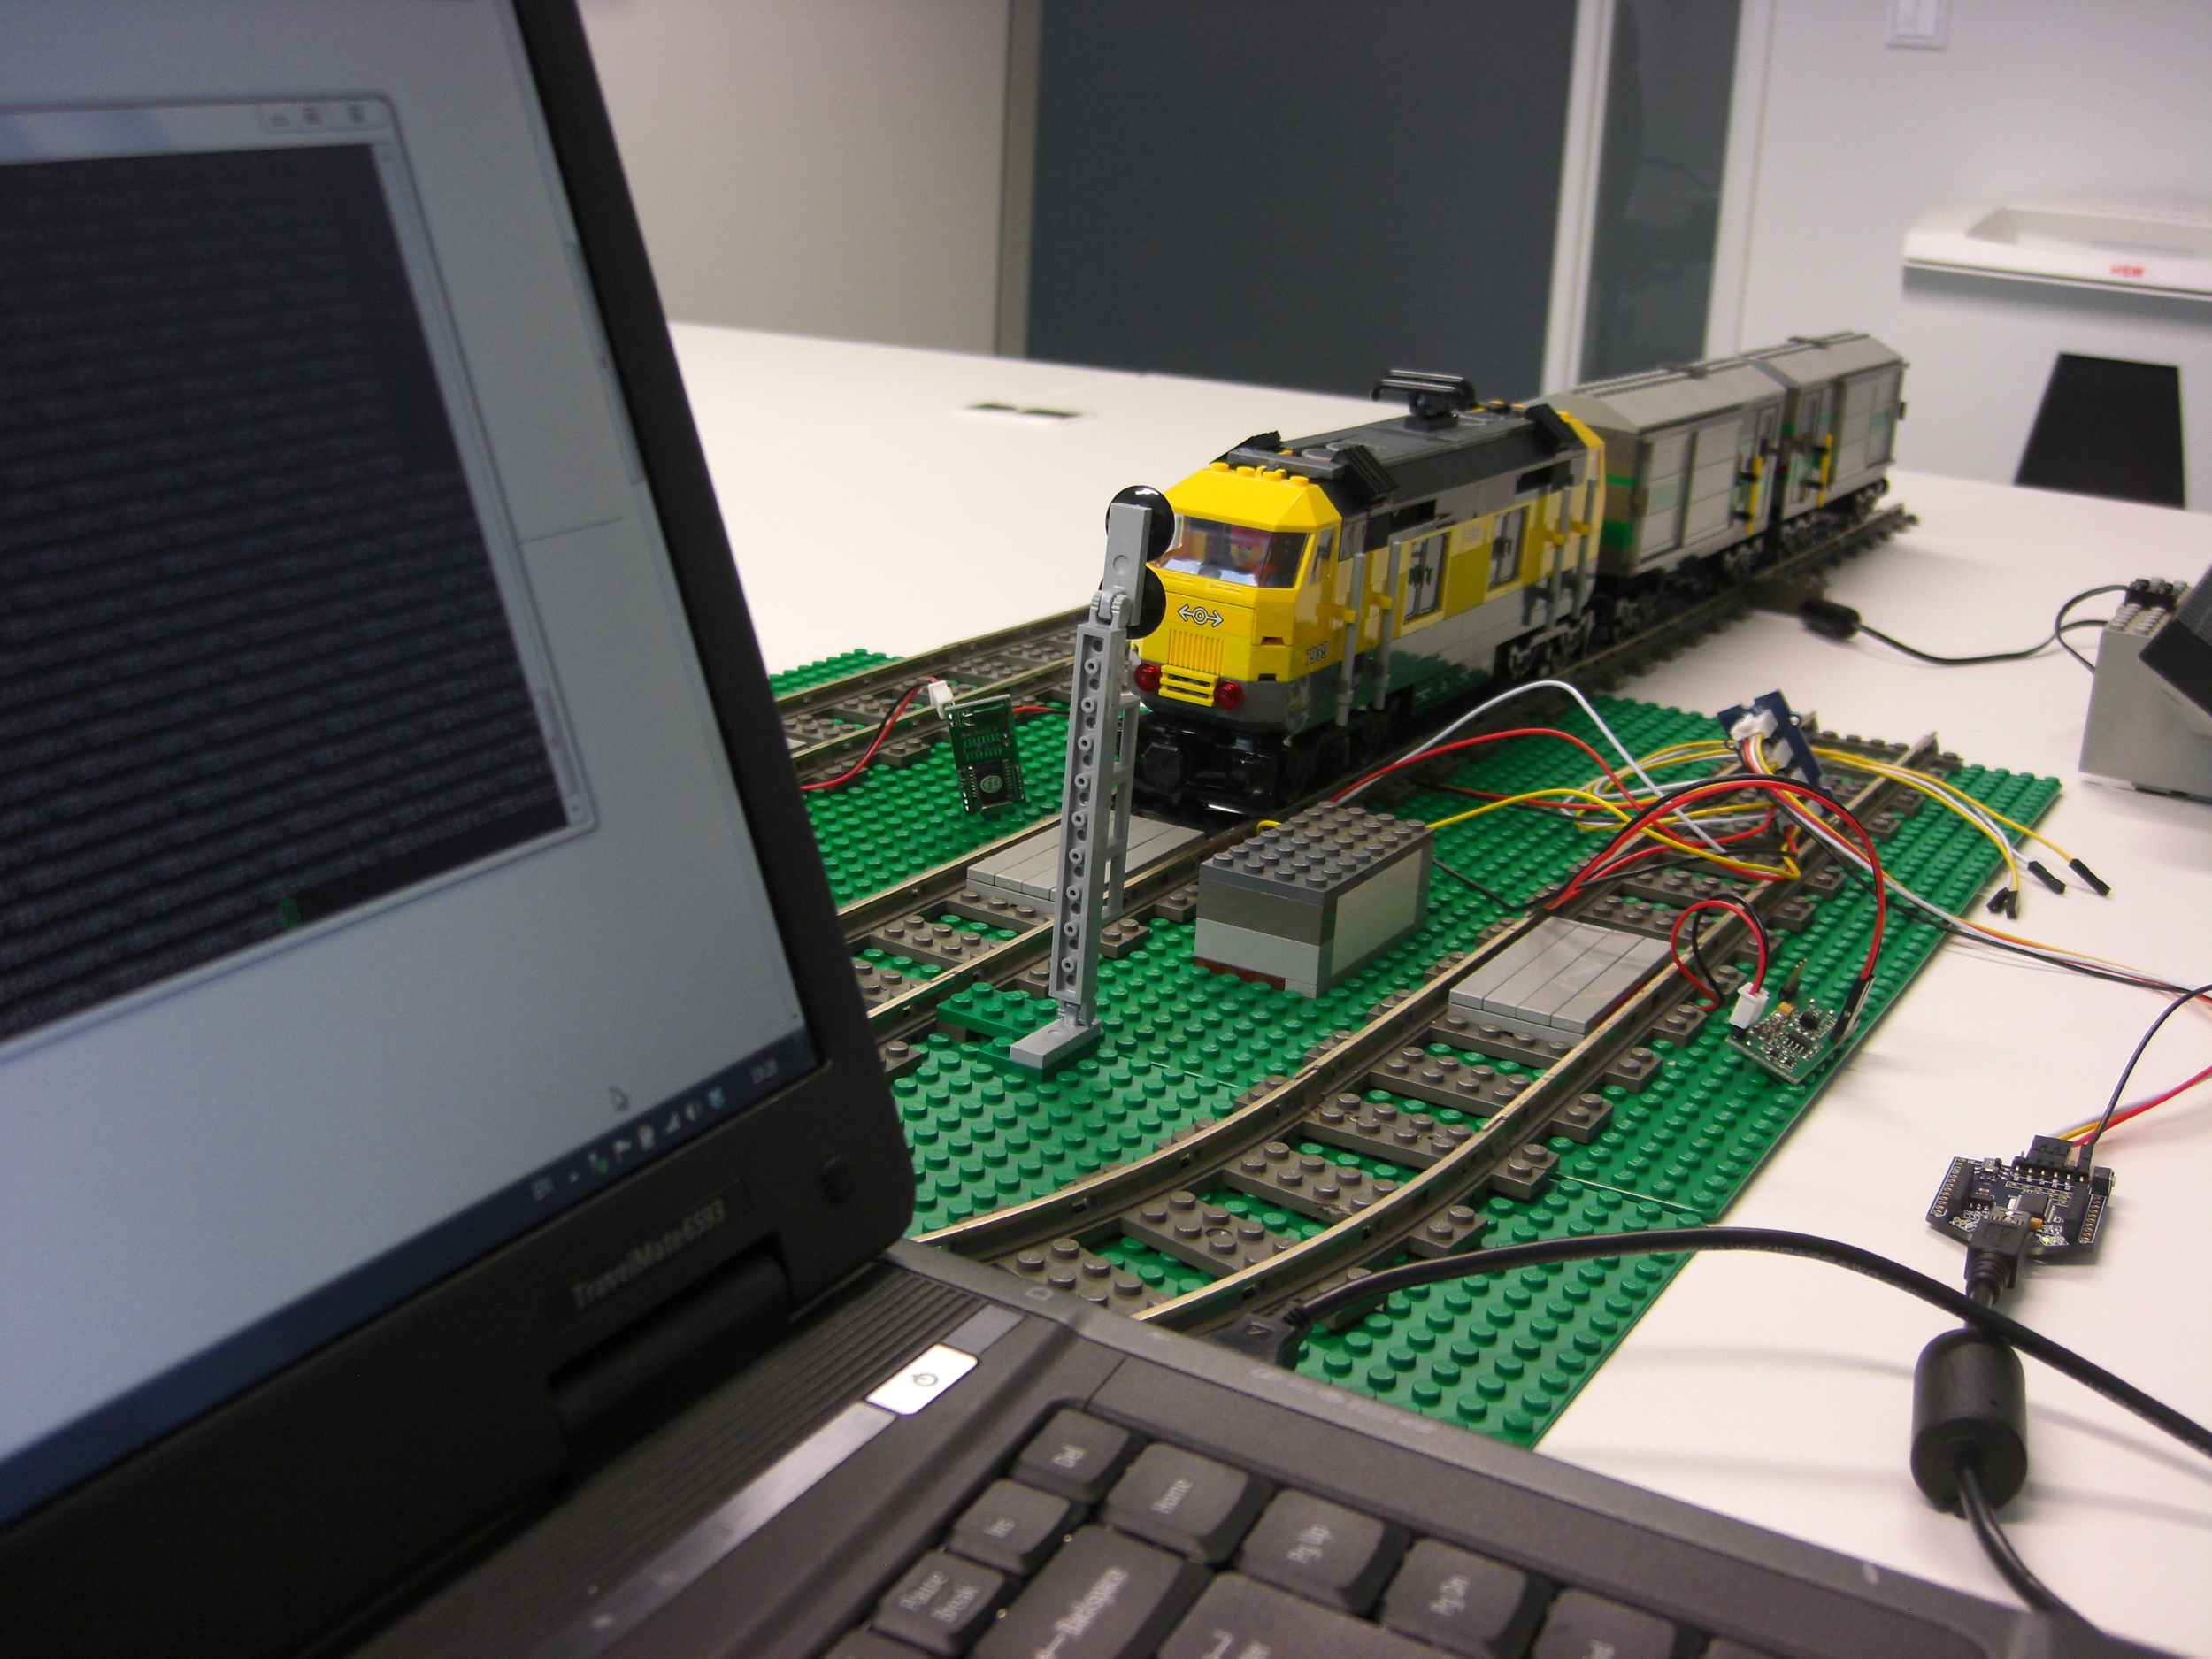 Terminal application showing the data coming from the RFID reader